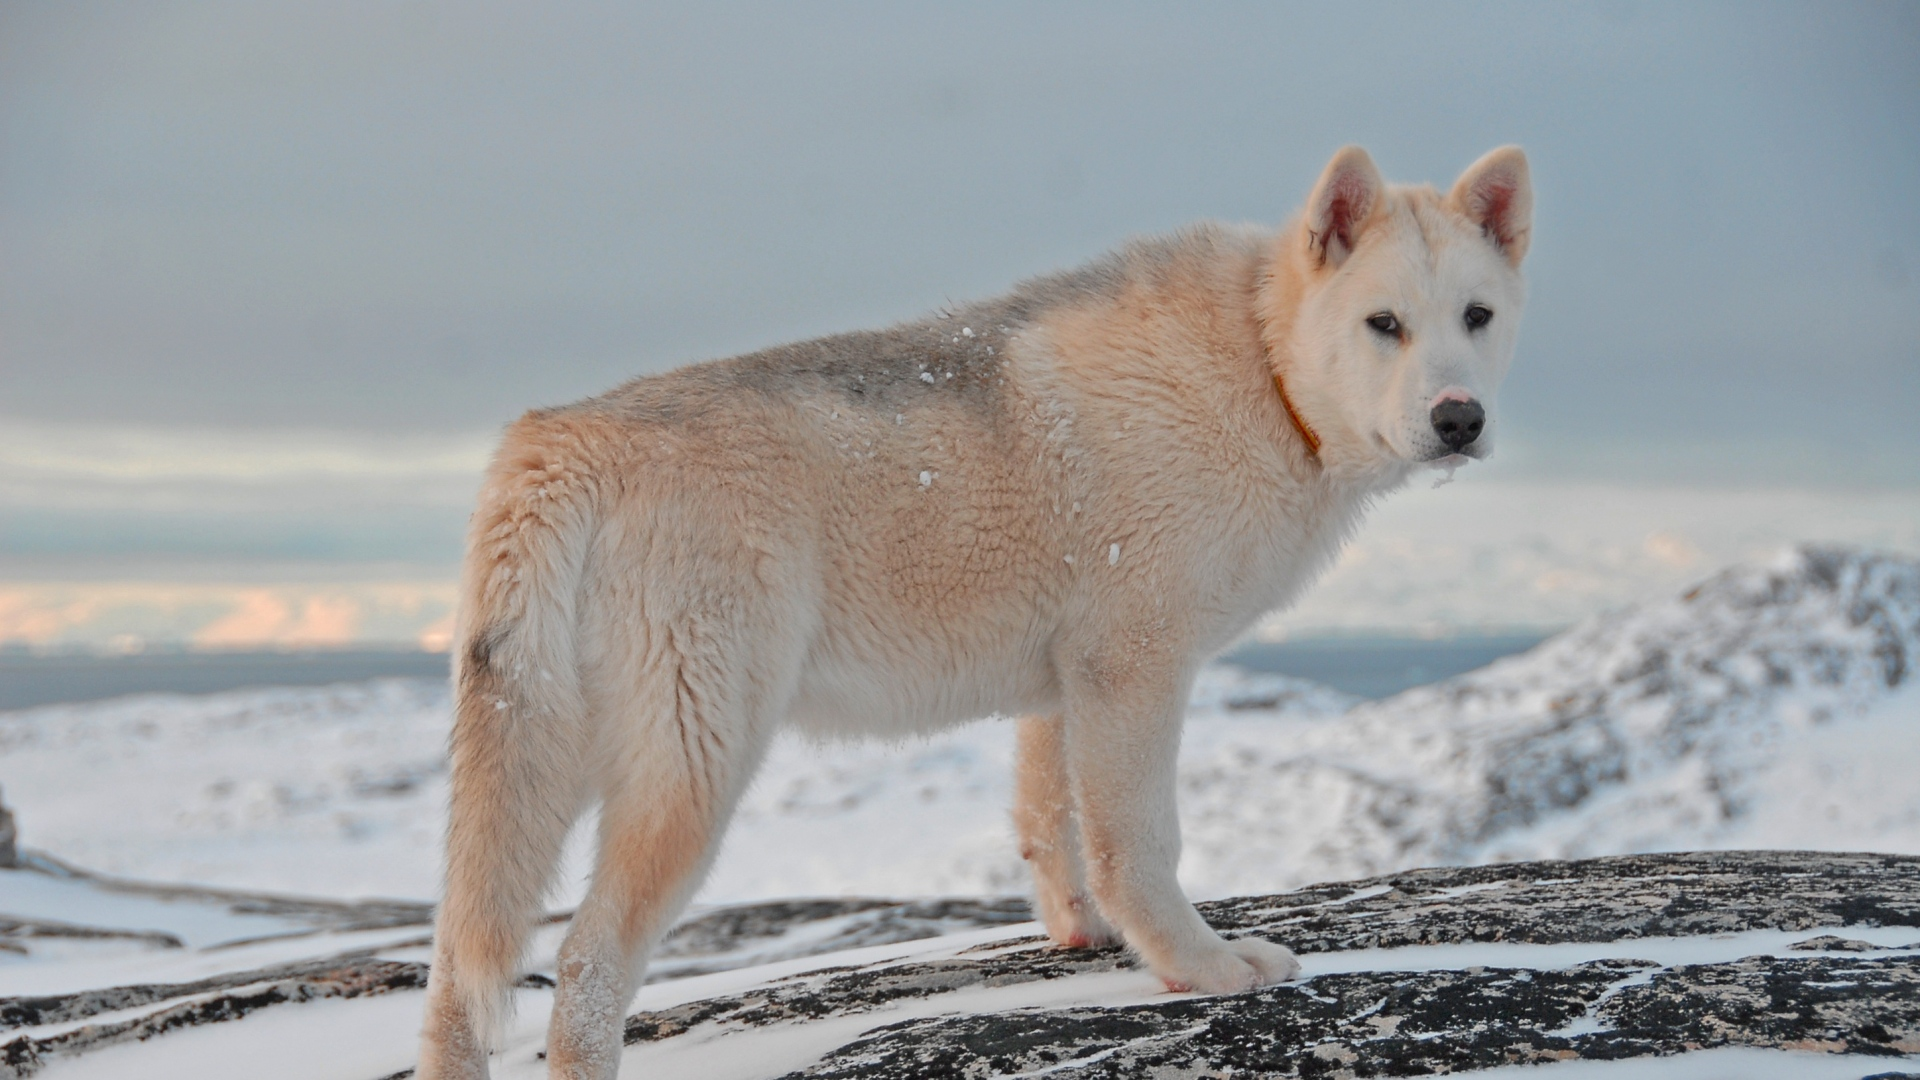 Greenland-Dog-Snow-Hd-1920x1080-Need-iPhone-S-Plus-Background-for-IPho-wallpaper-wpc5805588